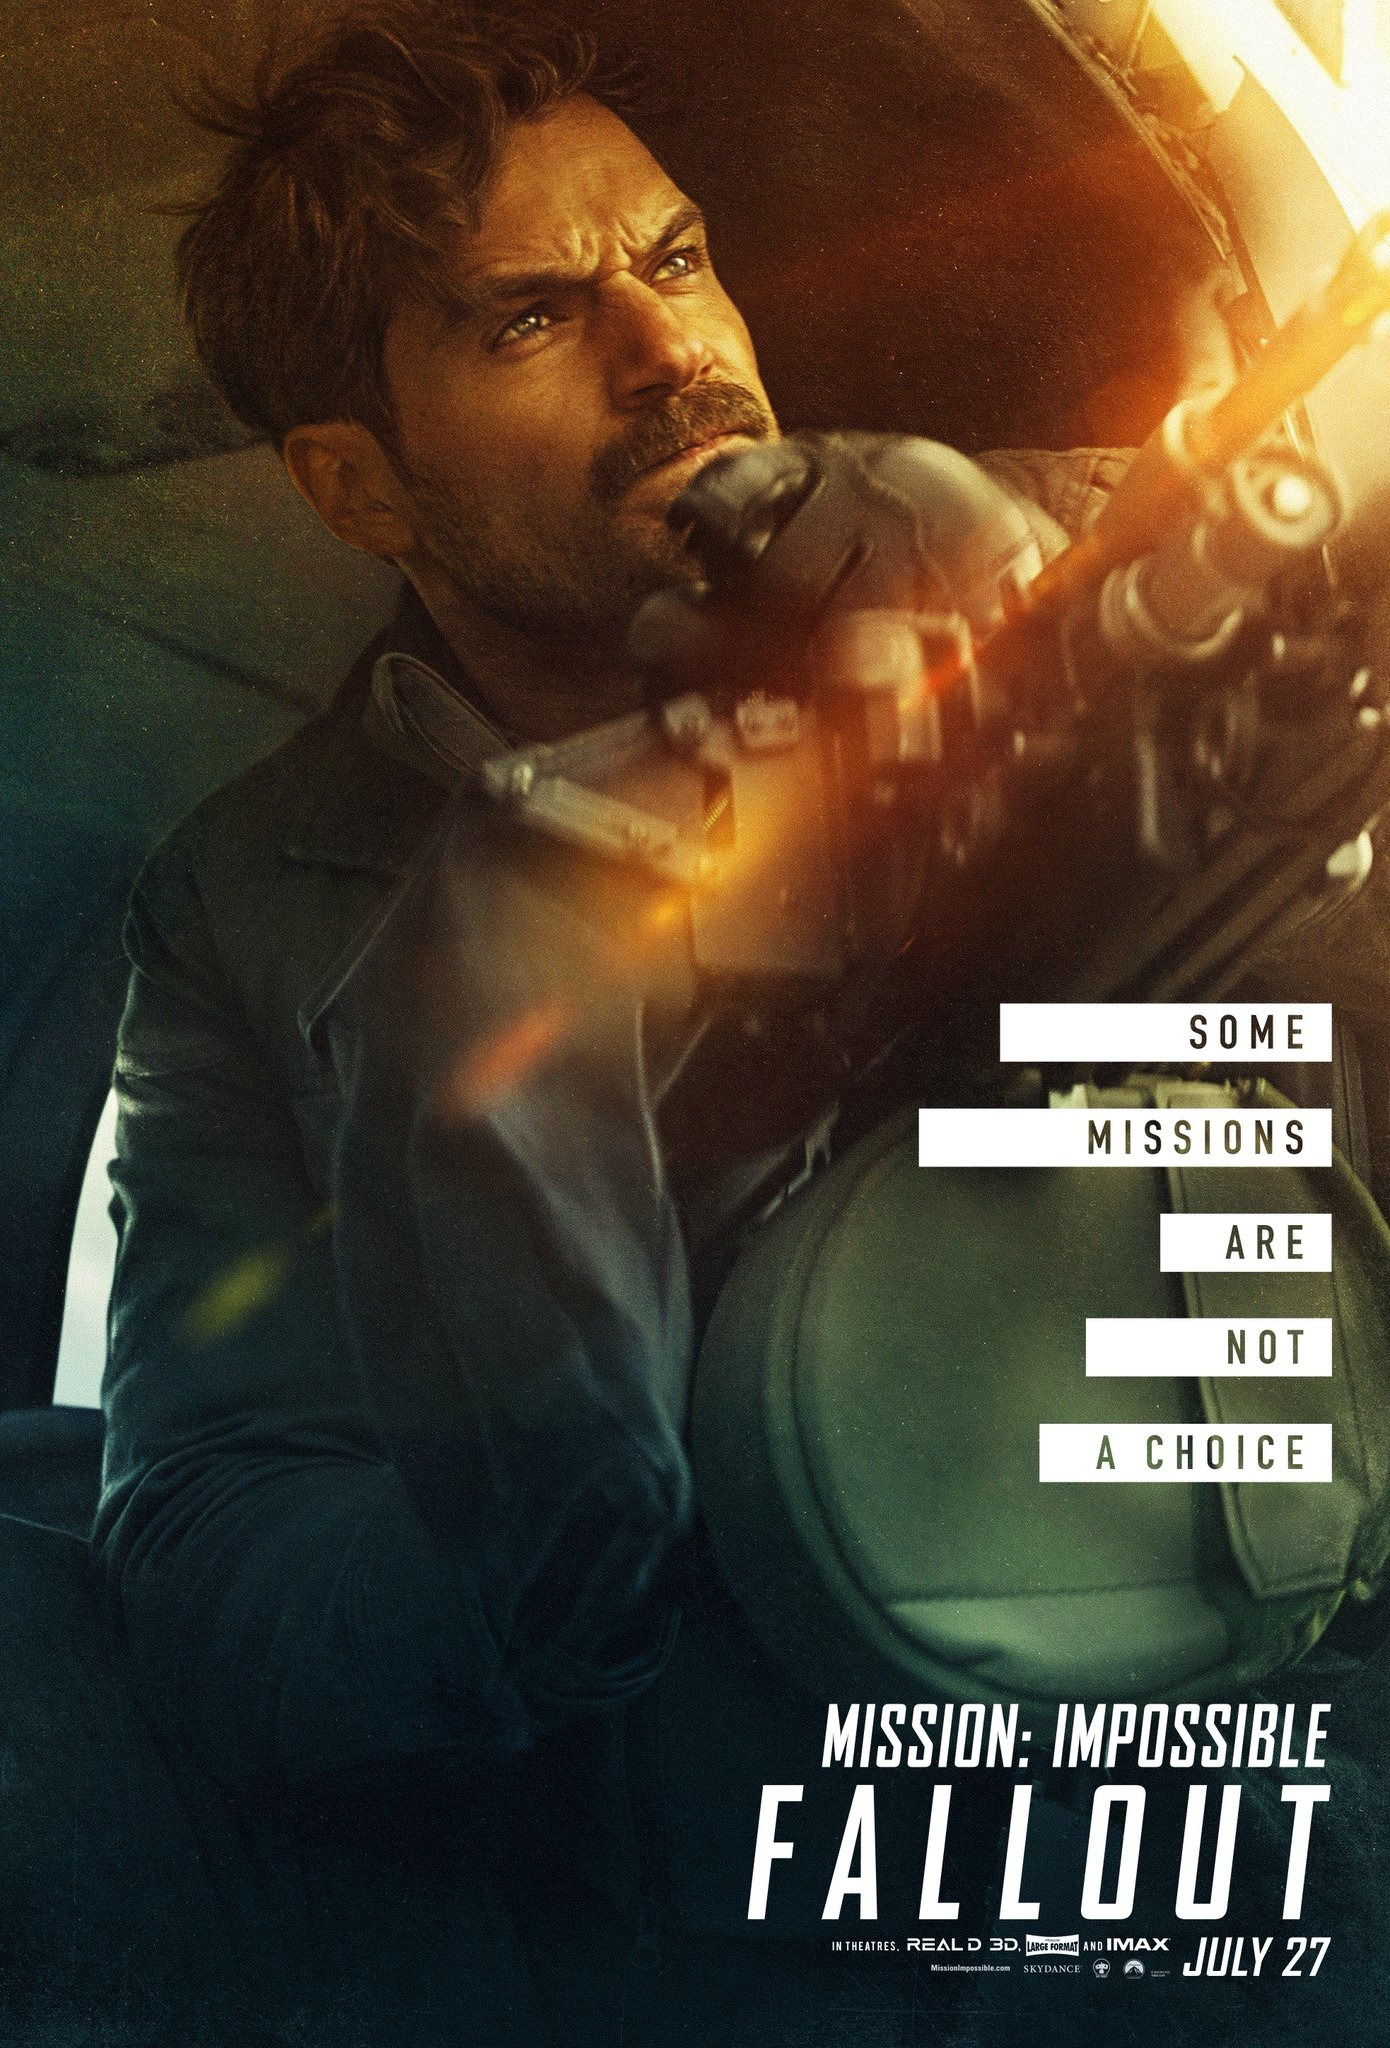 Mission Impossible Fallout poster 6.jpg